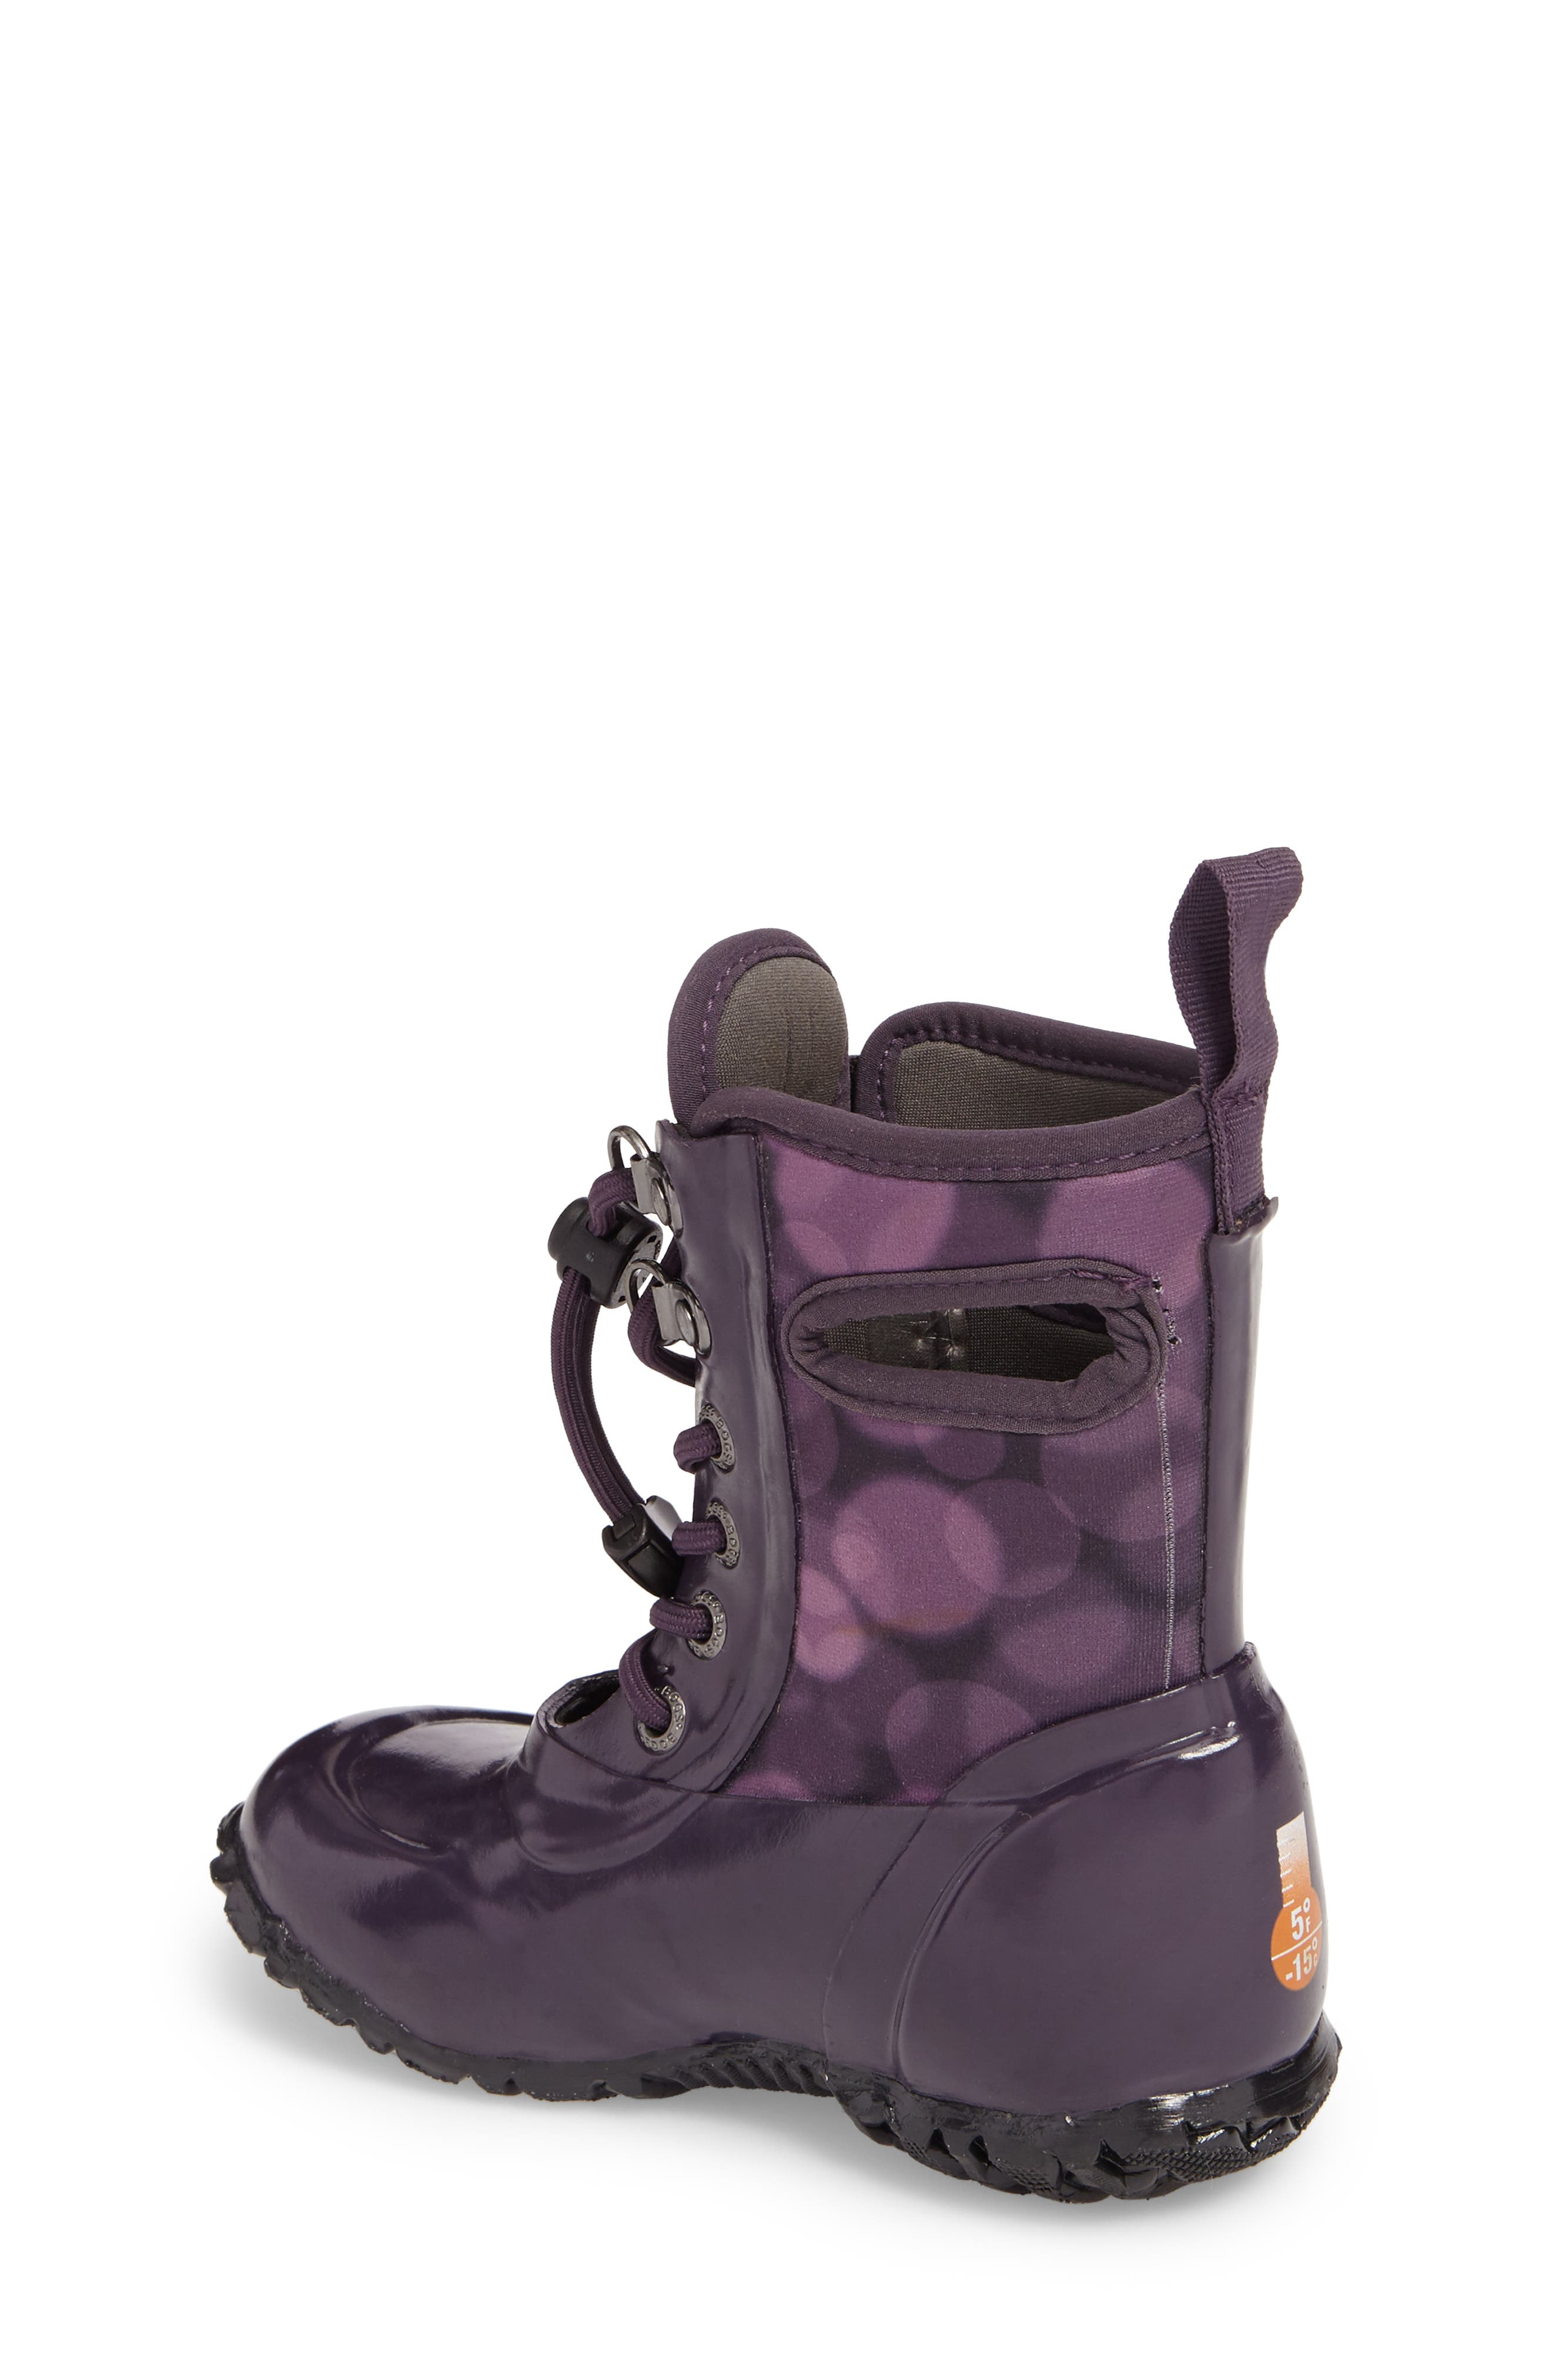 Sidney Waterproof Lace-Up Boot,                             Alternate thumbnail 2, color,                             Eggplant Multi